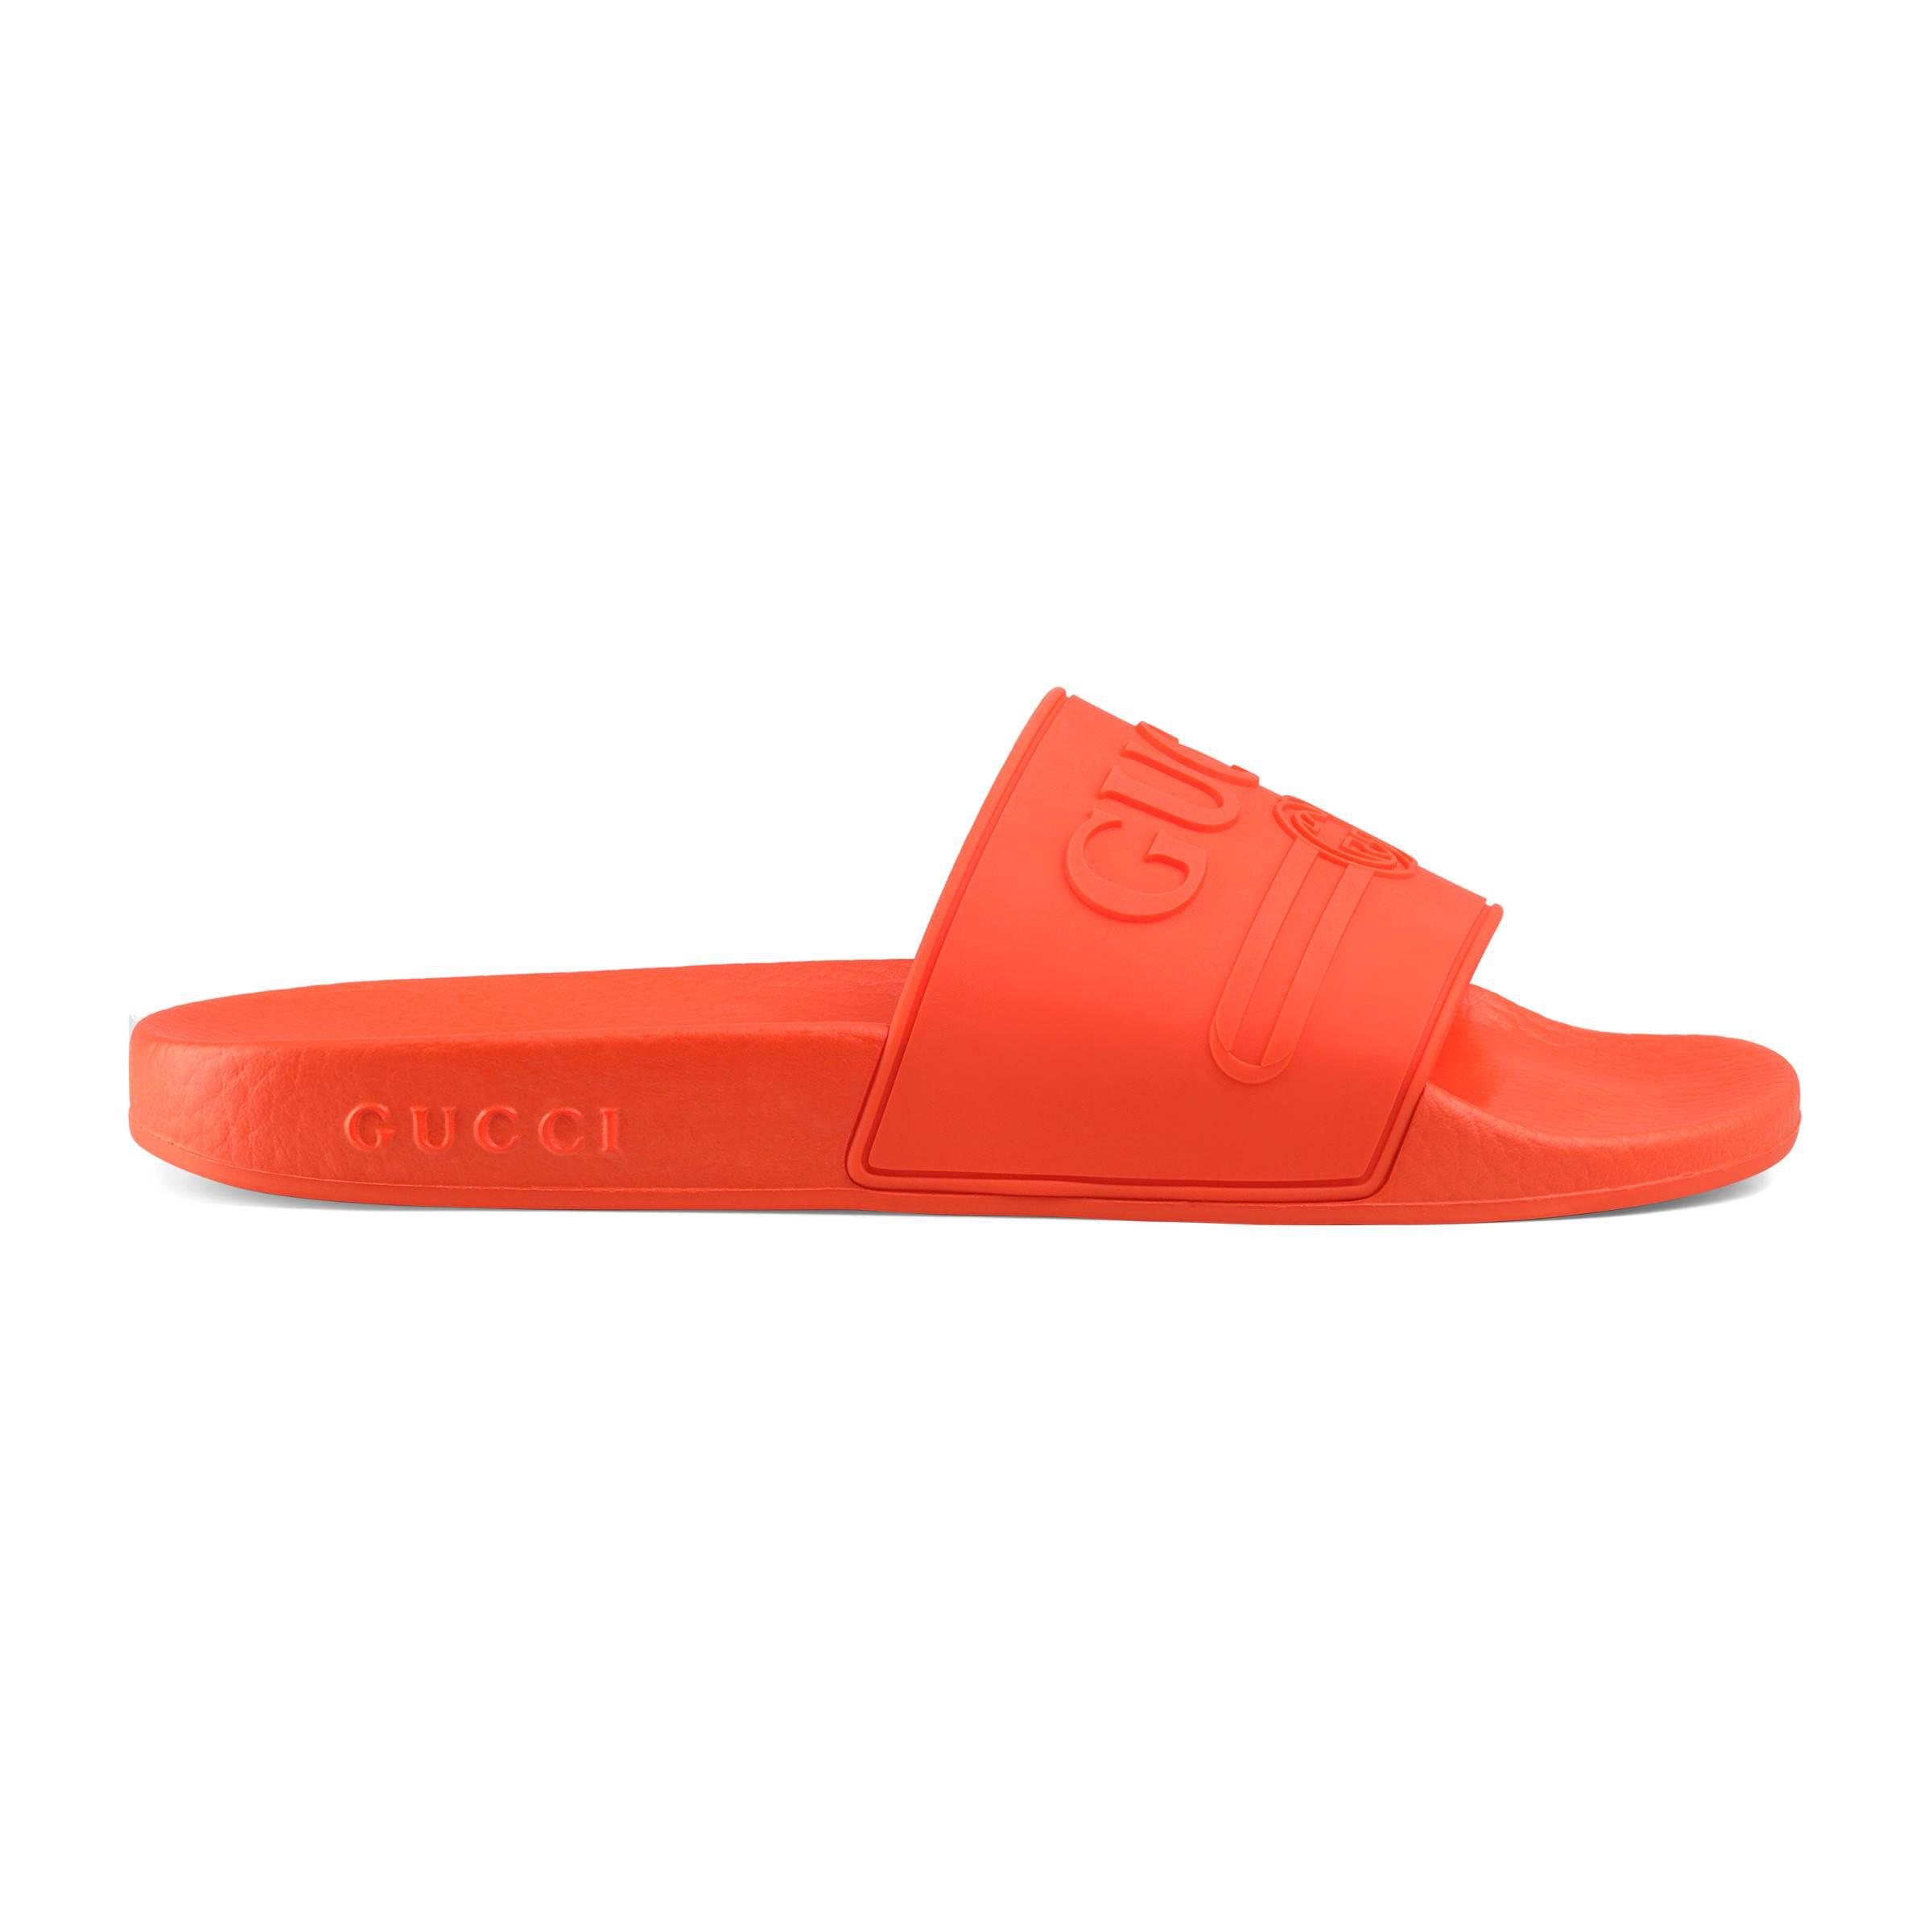 36ce037c6d061d Gucci Logo Rubber Slide Sandal in Orange - Save 4% - Lyst